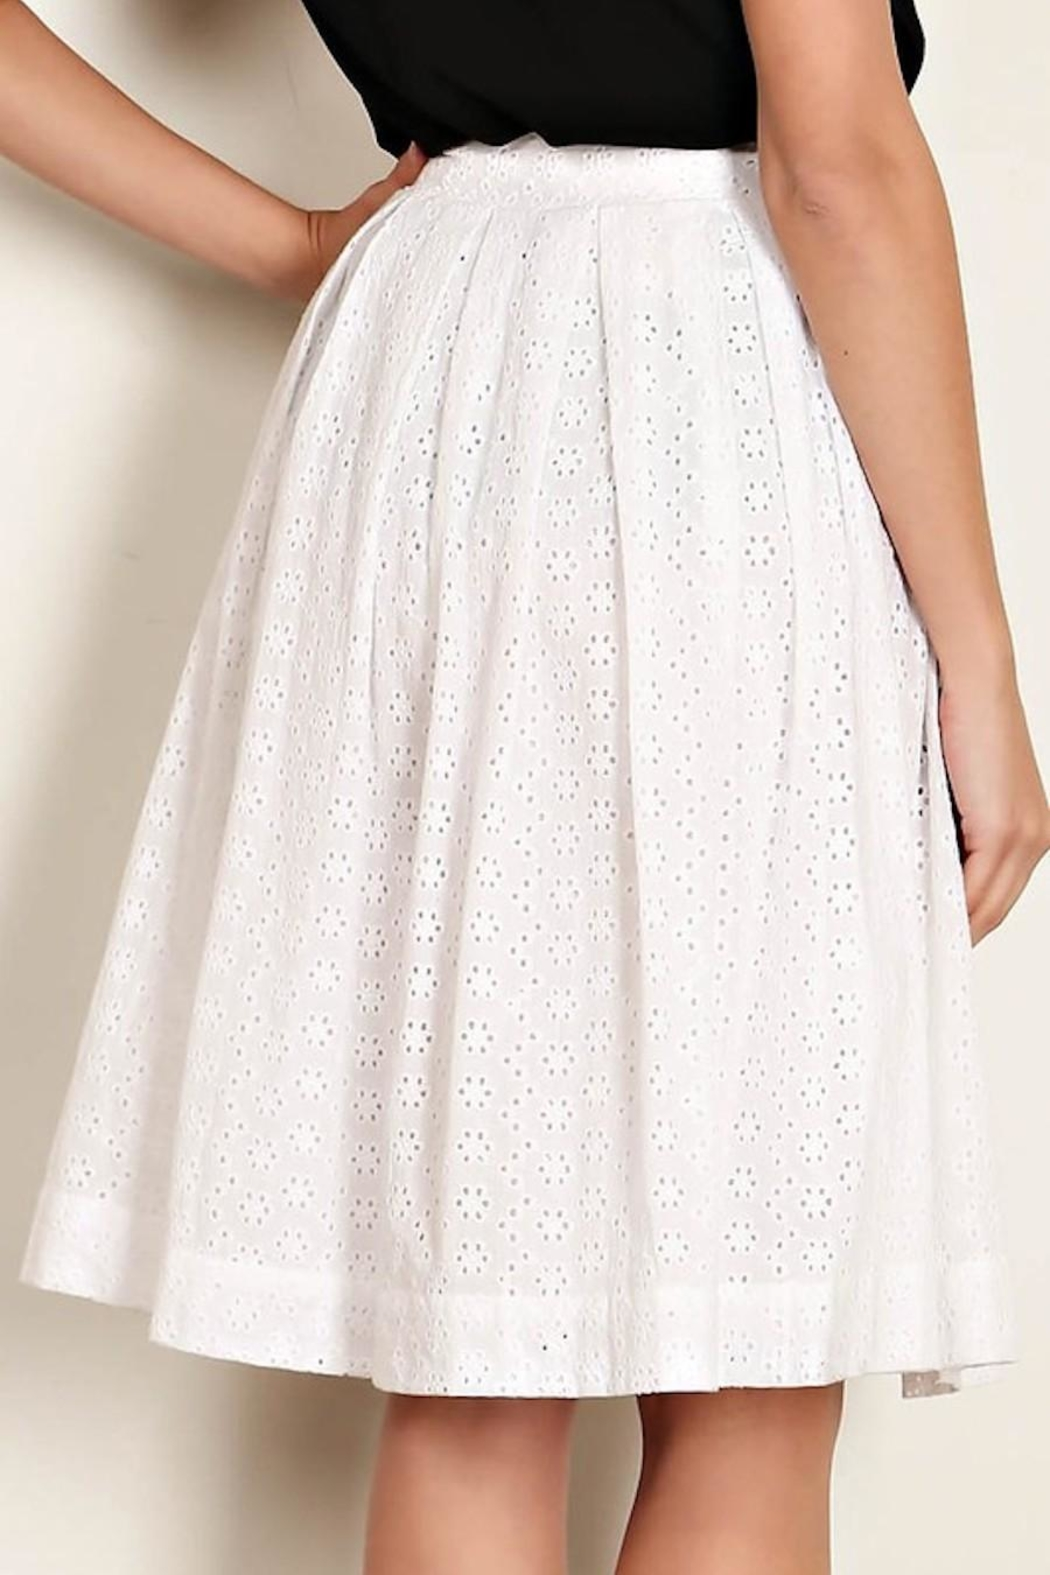 Comme Toi White Eyelet Skirt - Side Cropped Image